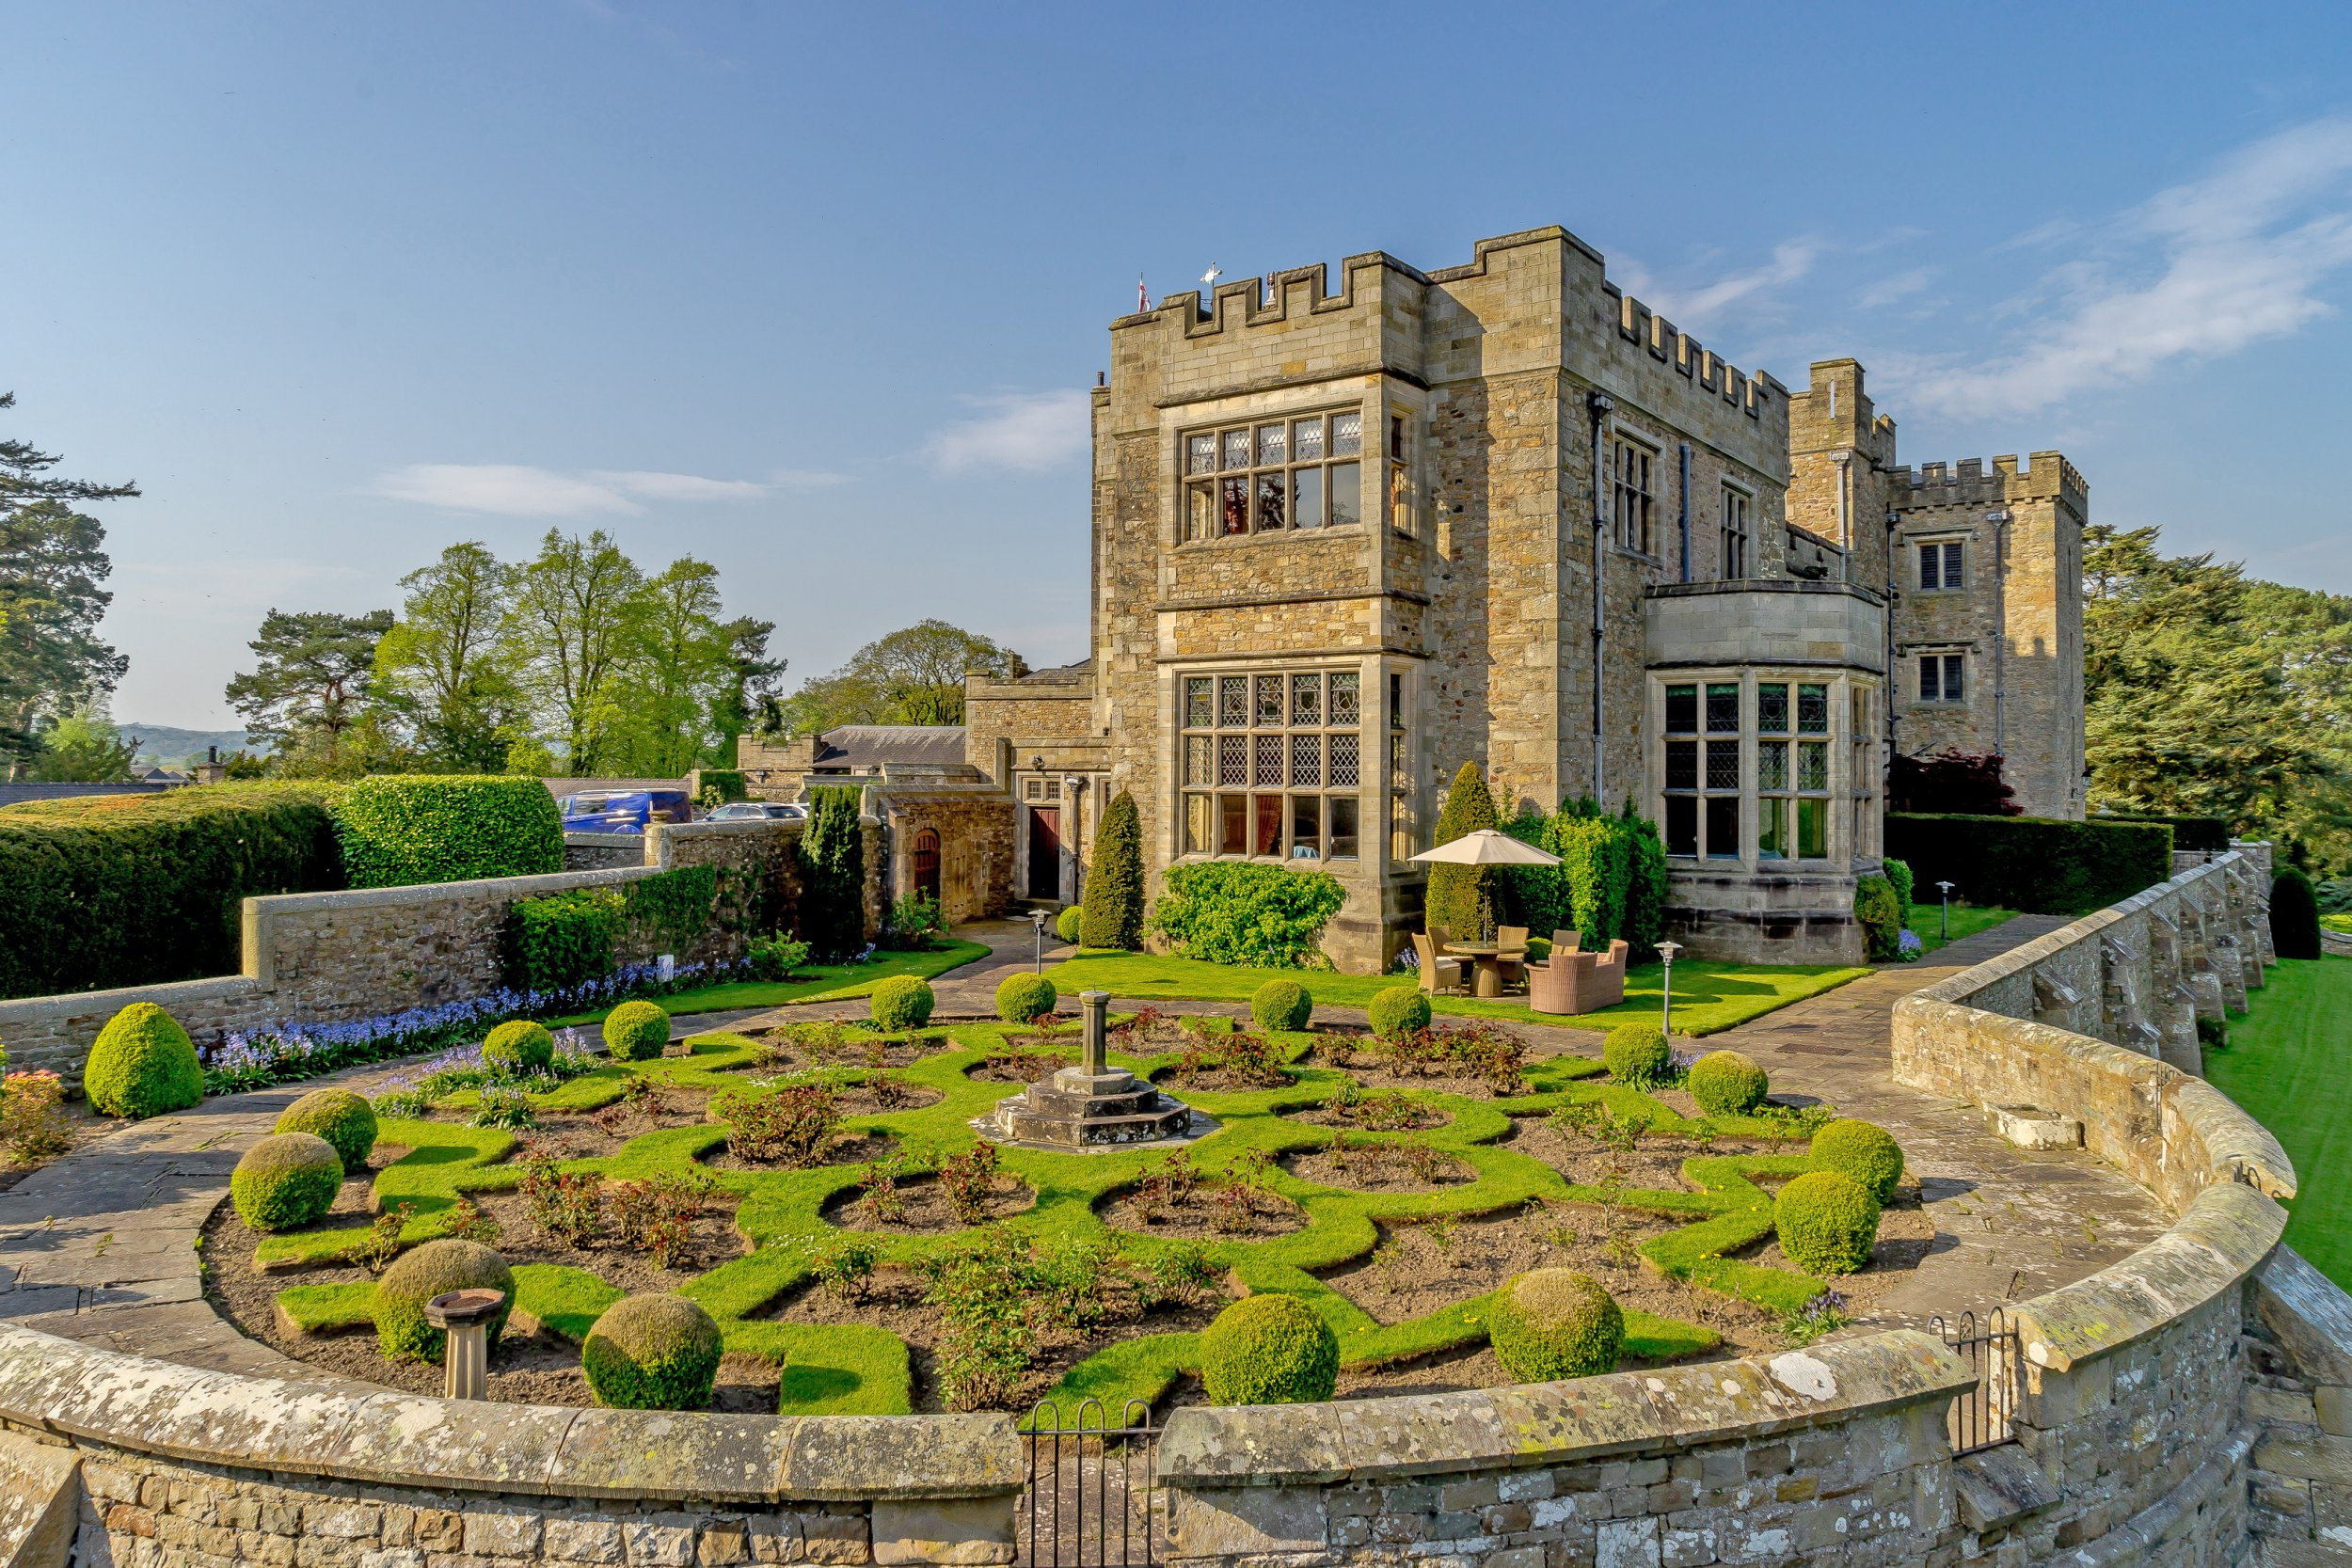 This incredible home set within an 11th century castle which has gone on the market for a cool ??1.25m comes with a priceless feature - a LORDSHIP title. See SWNS story SWLEcastle. The three-floor home, set in the Thurland Wing of Grade II-listed Thurland Castle, even comes with its own moat and battlements. The medieval property can only be accessed via the castle's original stone arch and gateway stretching across the ancient bridge over the moat. Once owned by 'The Stainless Knight', Brian Tunstall - a war hero who died at the Battle of Flodden in 1513 and was immortalised in a poem by Sir Walter Scott - the Thurland Wing has been extensively renovated to bring its 1,000-year past up to date.